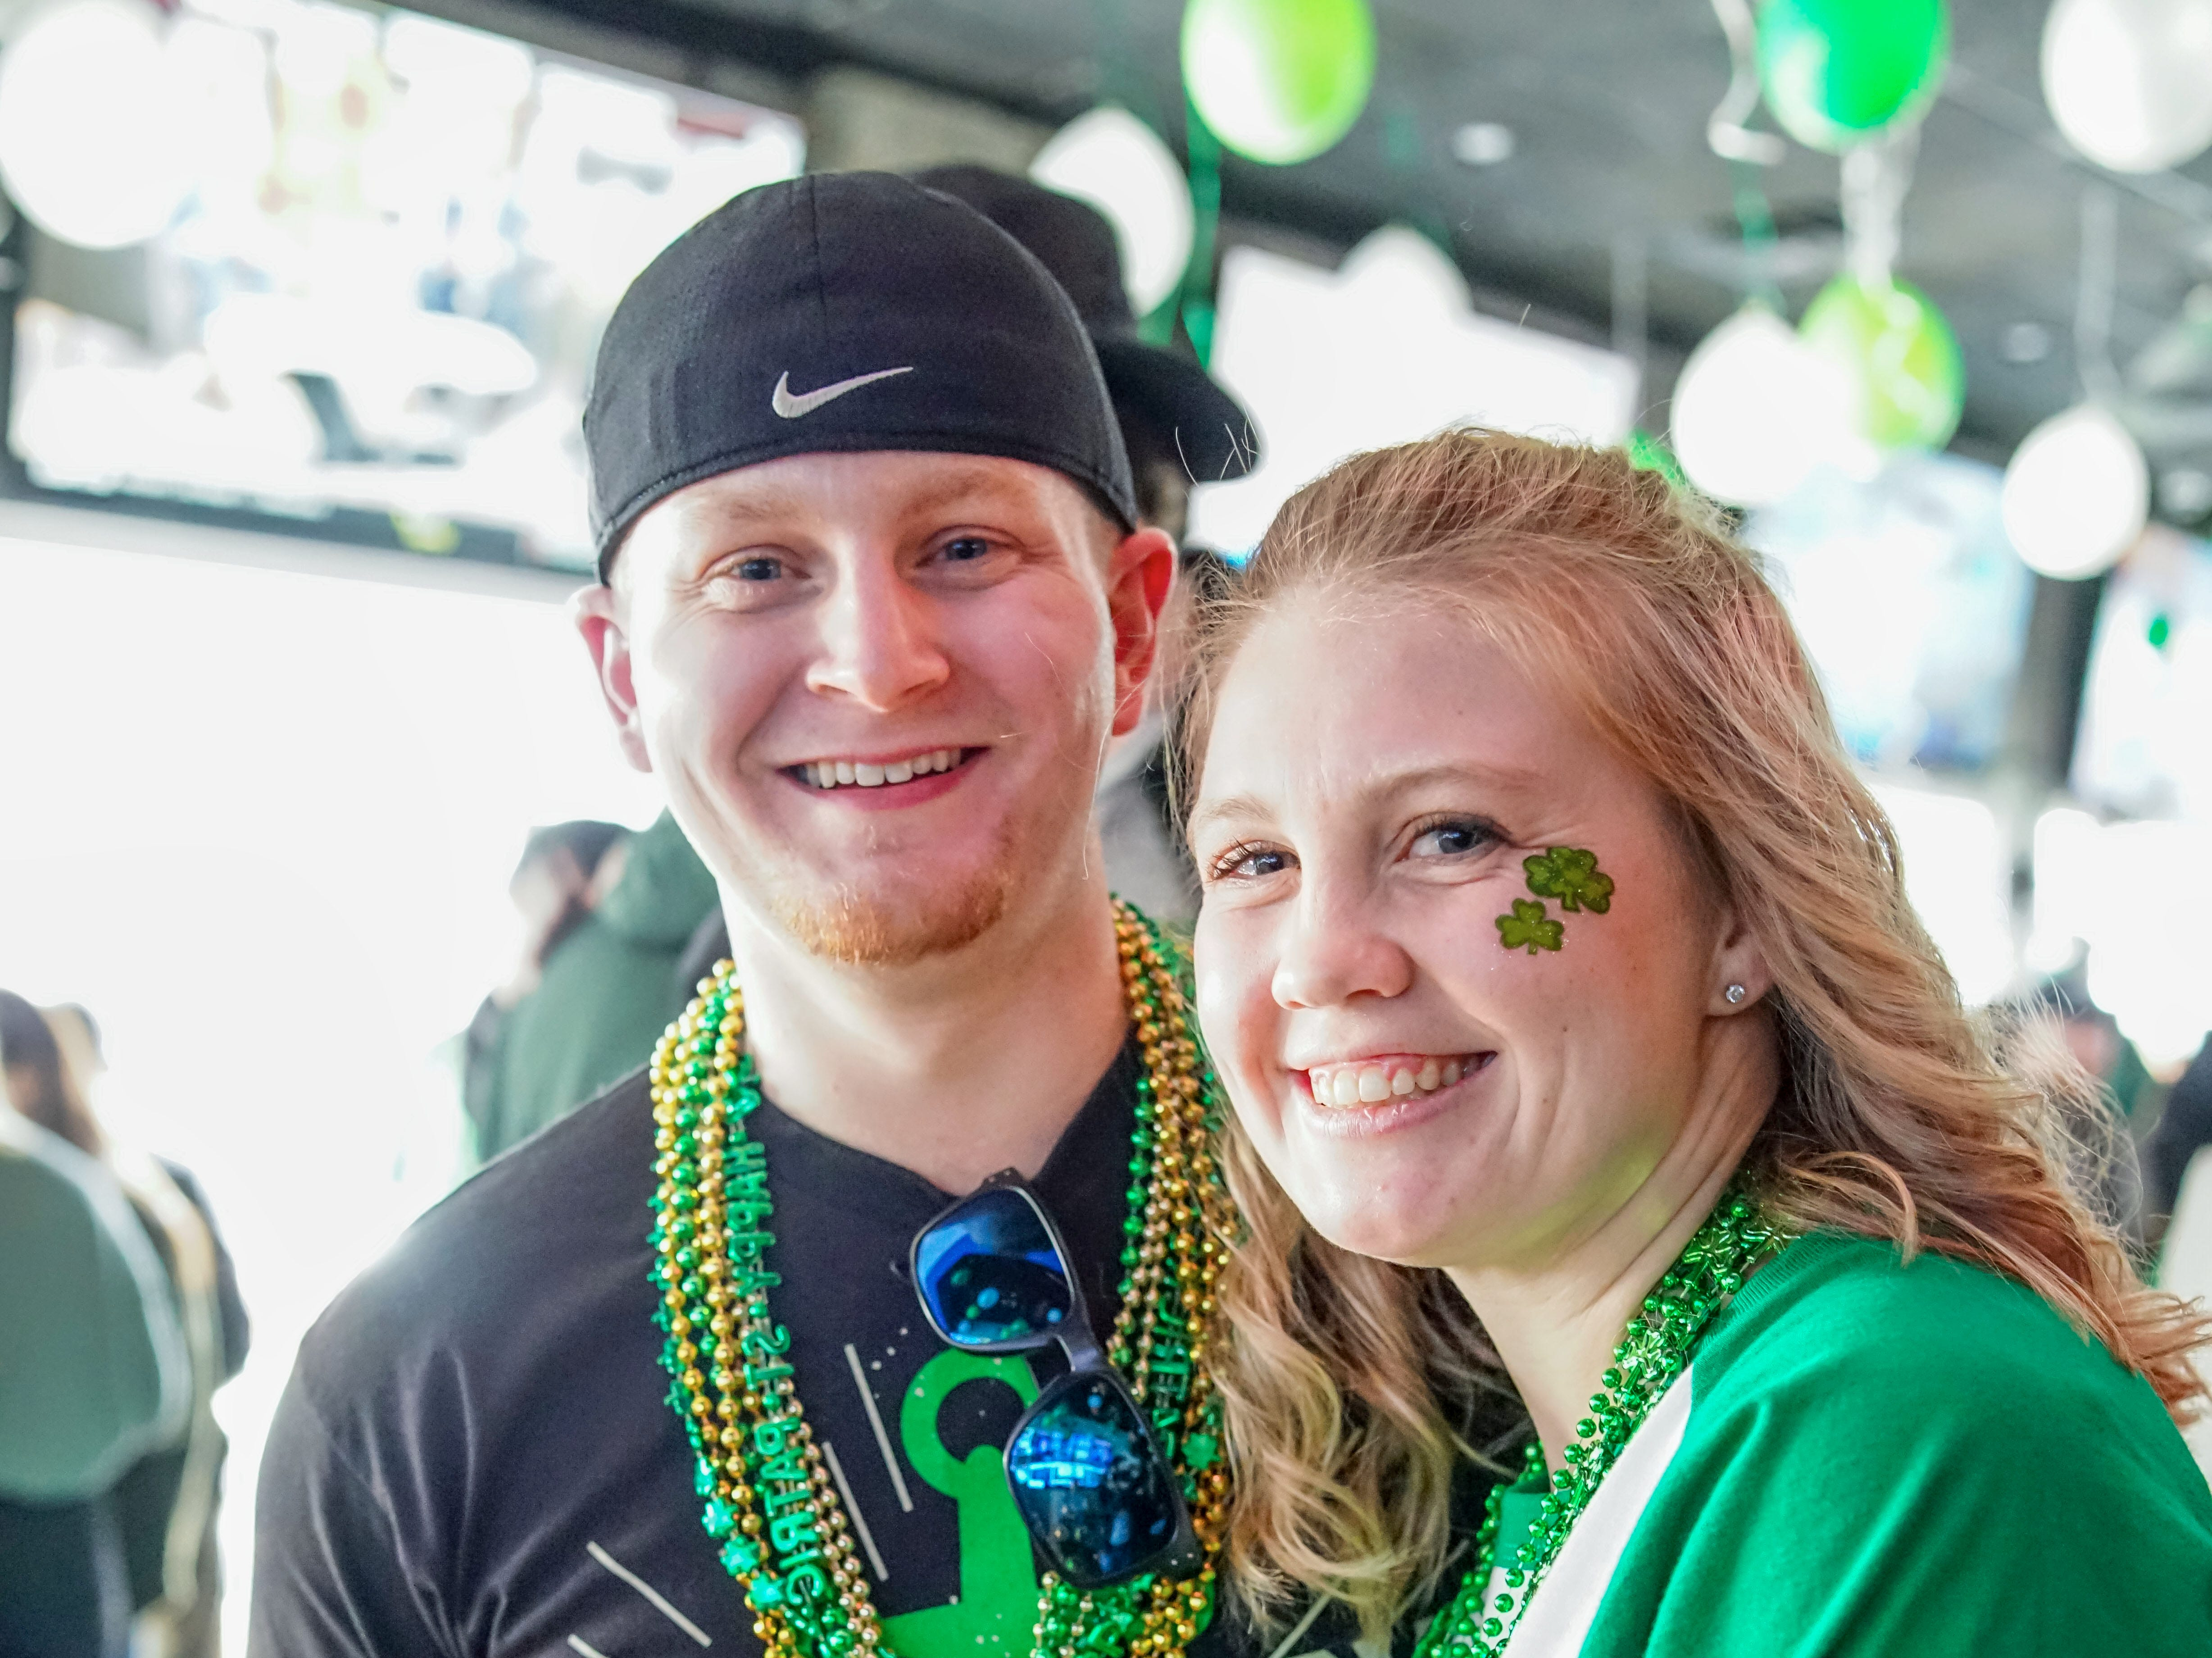 Emily Nalevechko, 26, and Dallas Downey, 23, both of Des Moines, having a fun time, Saturday, March 16, 2019, at Pints.